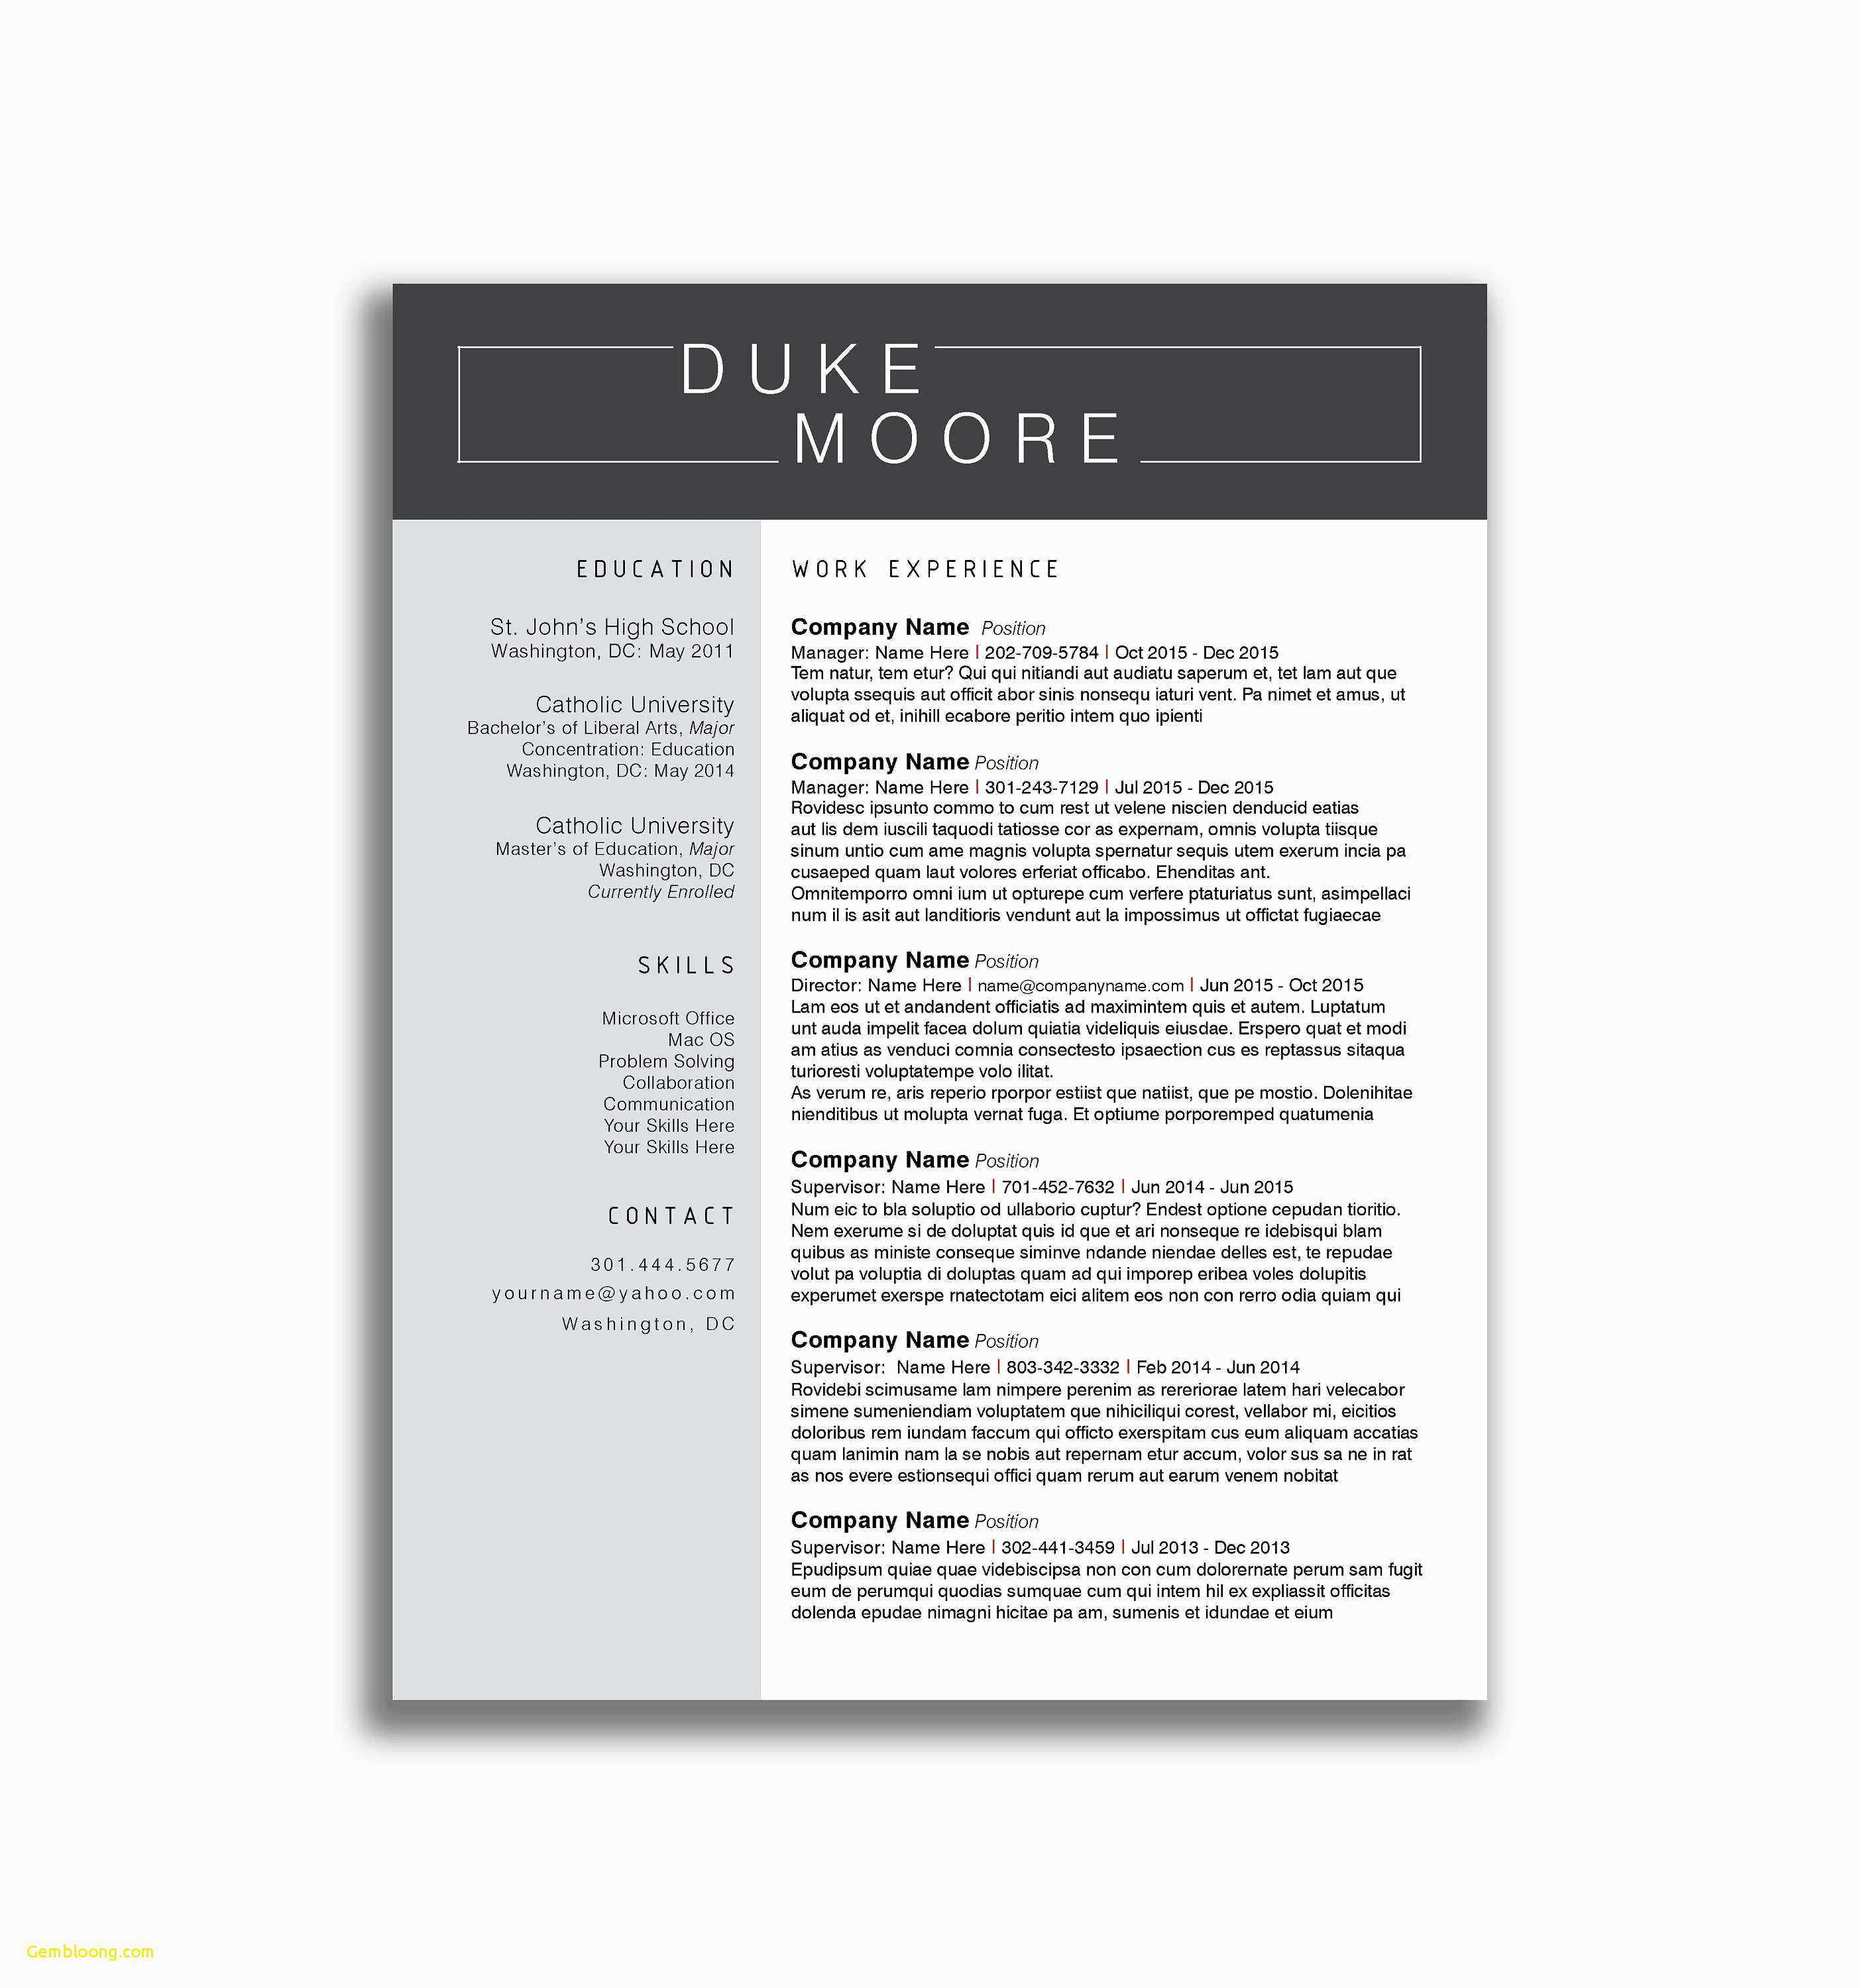 Amscan Imprintable Place Card Template | Car Price 2020 With Regard To Amscan Templates Place Cards